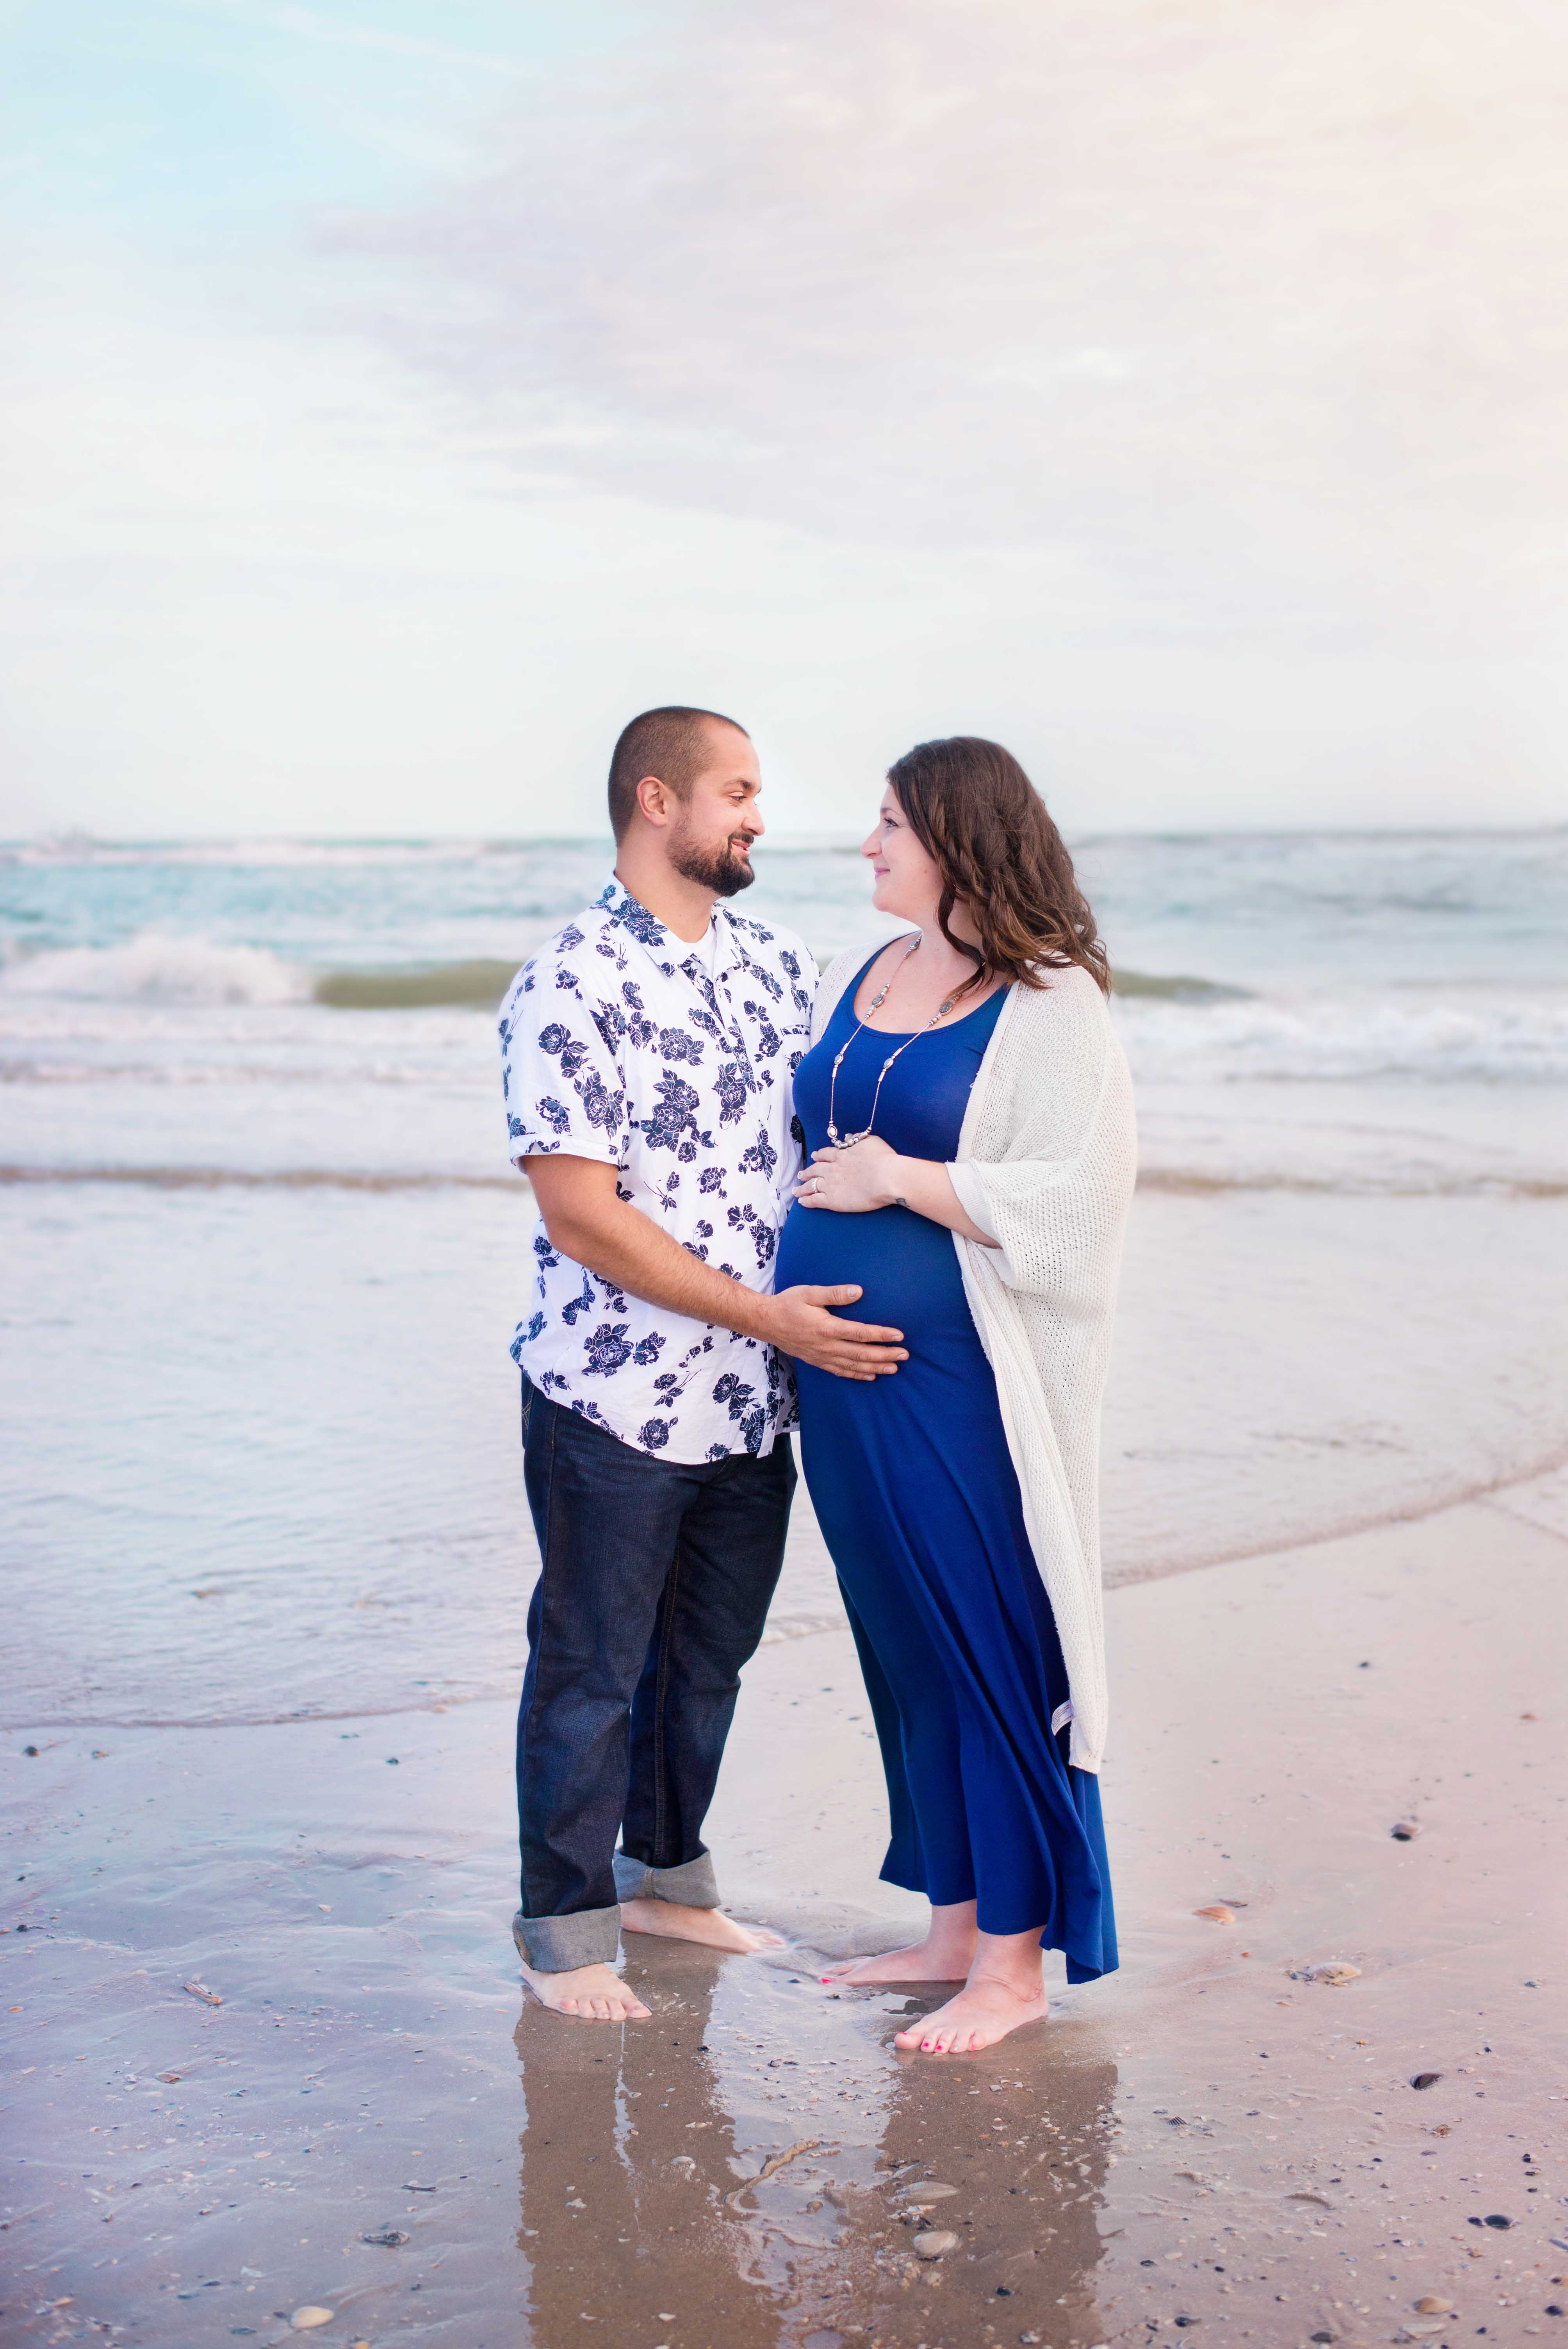 Family_Maternity_Beach_Pregnancy_Photos_Brigantine_New_Jersey_Sunset